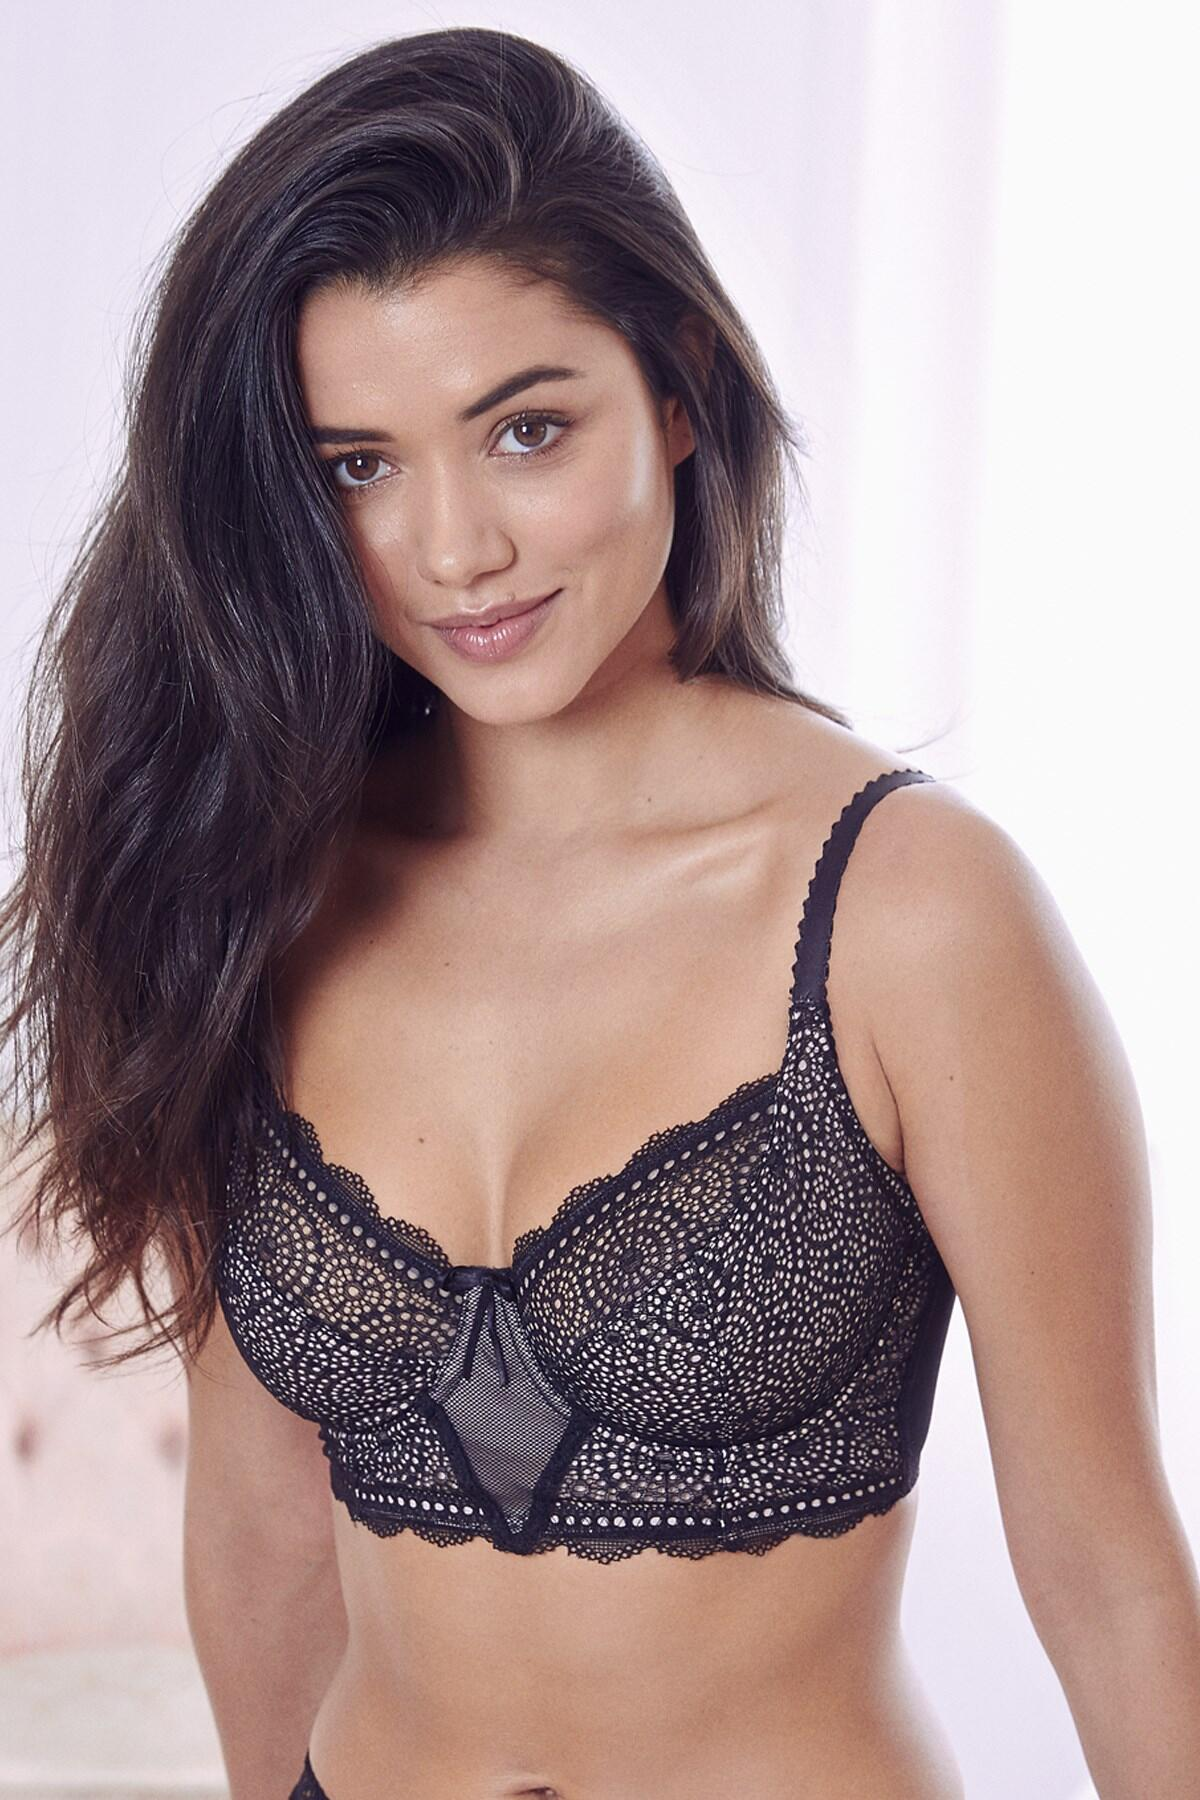 Eclipse Longline Underwired Bra - Black